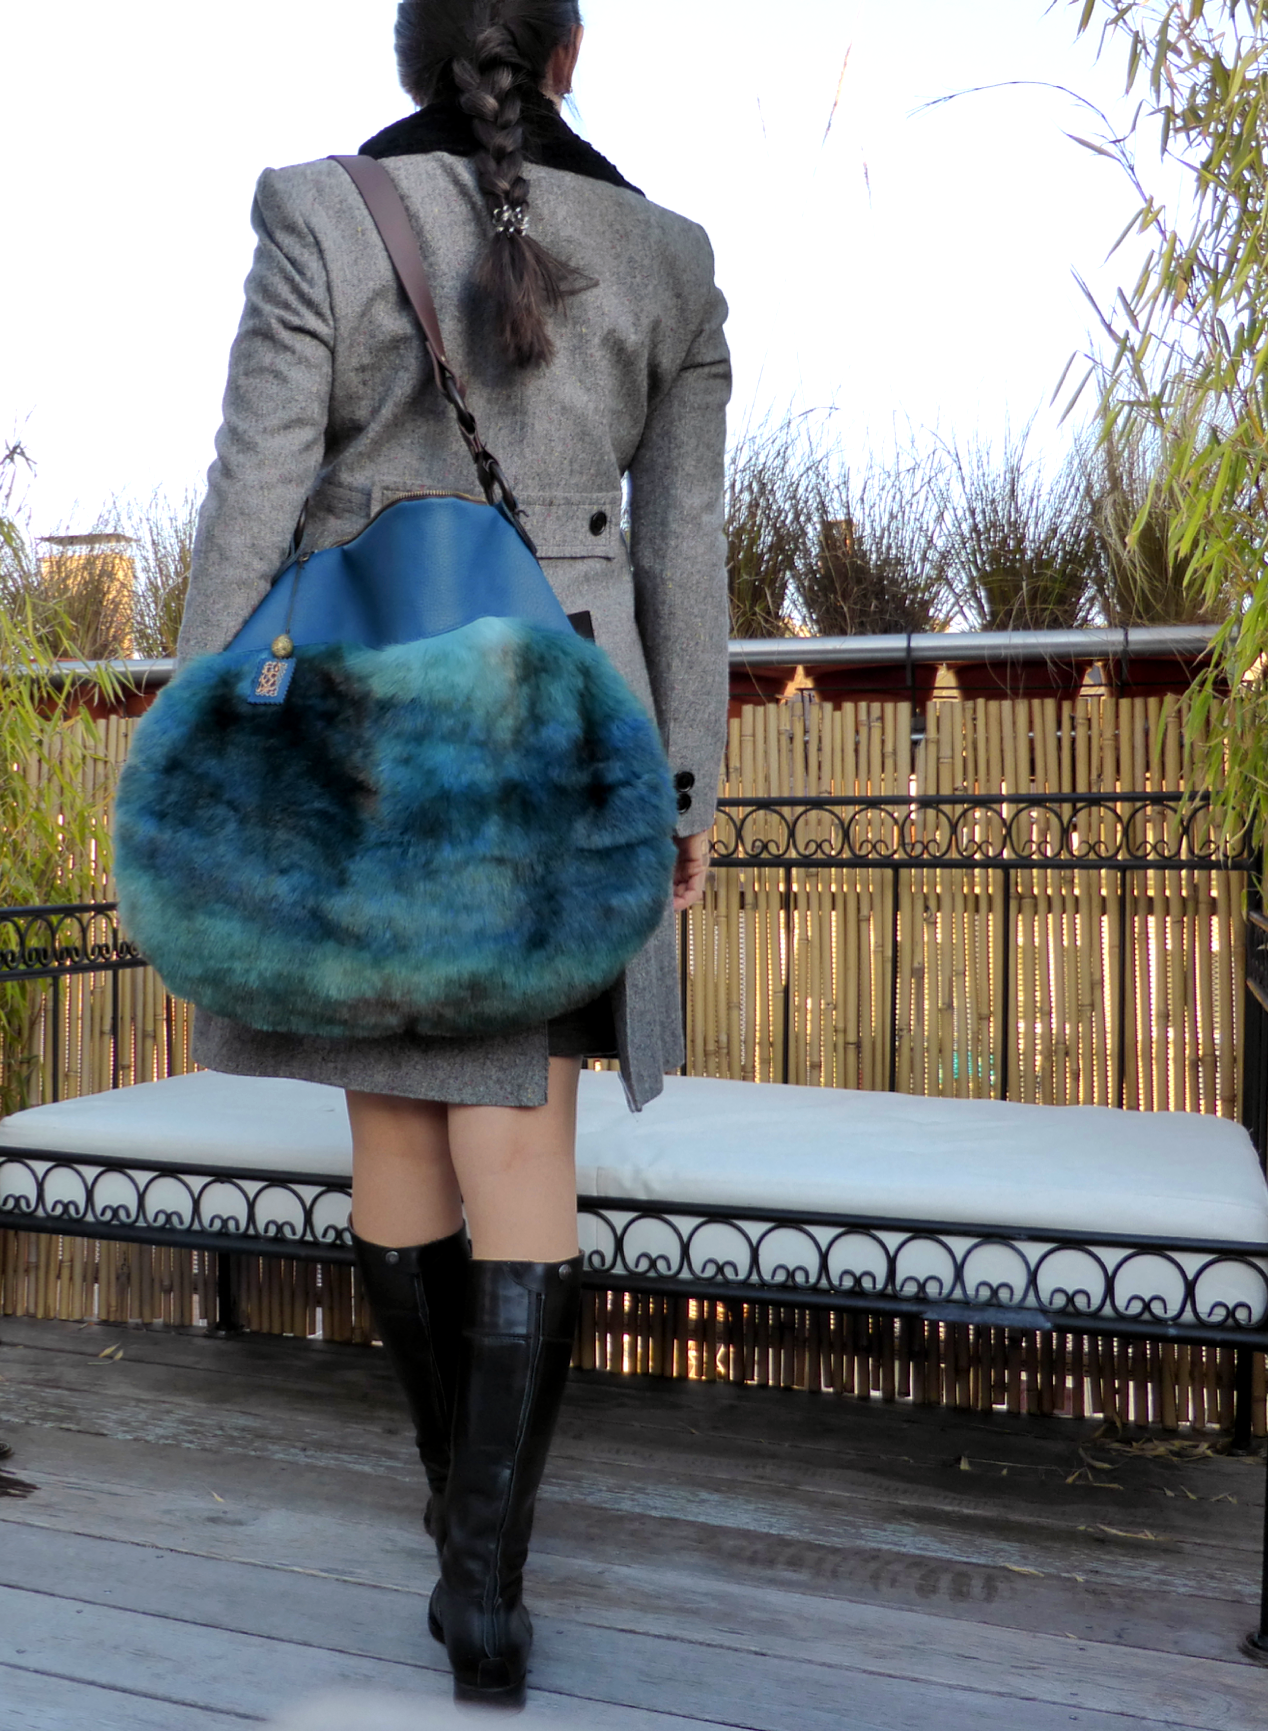 Have a look at this gorgeous faux fur oversized handbag: outer material cozy faux fur in different shades of blue and brown, lining material leopard microfibre. This bag is whole vegan! At www.wagnerstrasse.de https://www.amazon.de/handmade/wagnerstrasse #vegan #veganlife #fauxfurbag #handmadeingermany